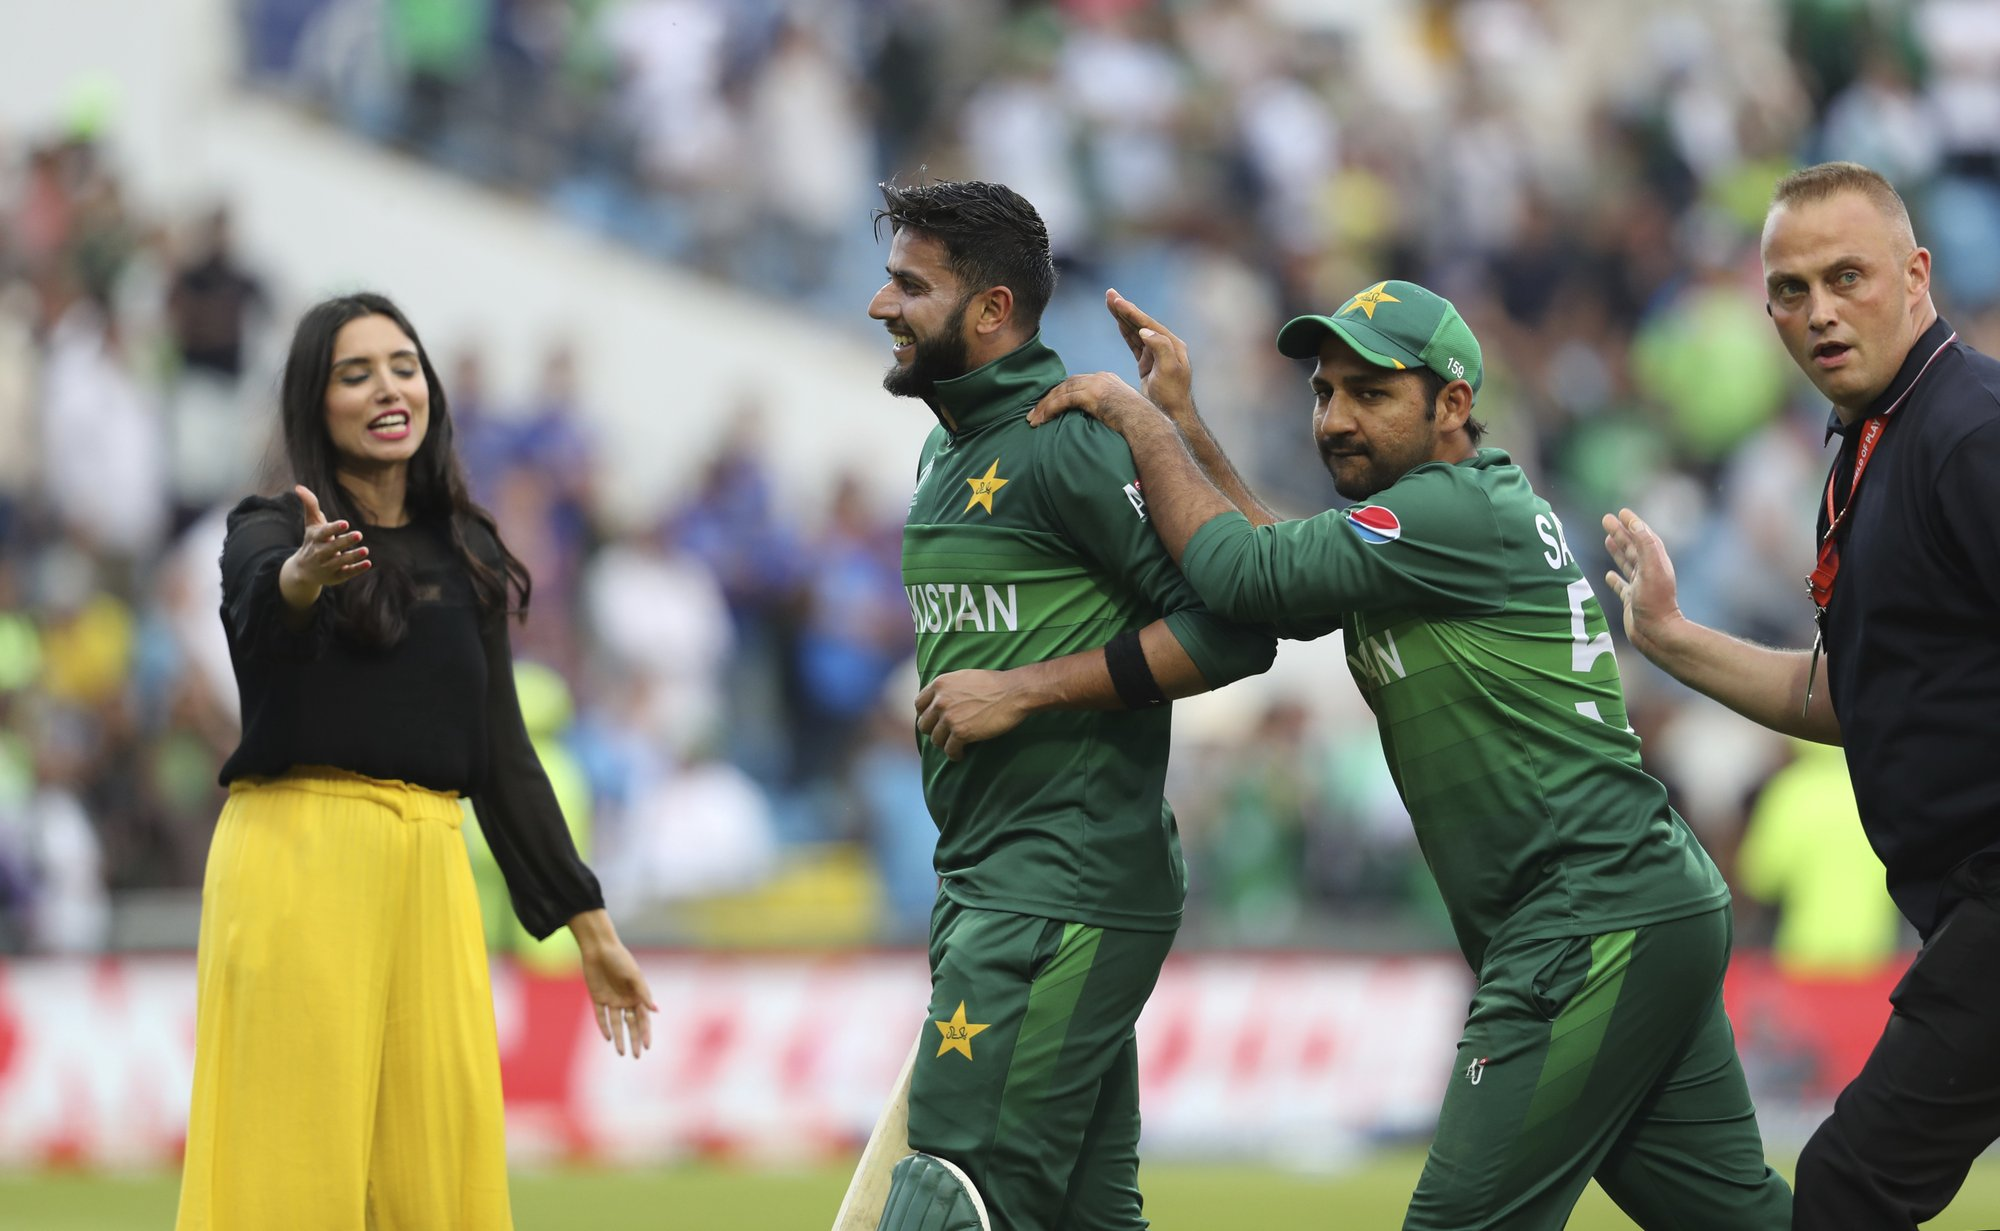 Pakistan edges Afghans with 2 balls to spare, moves to 4th